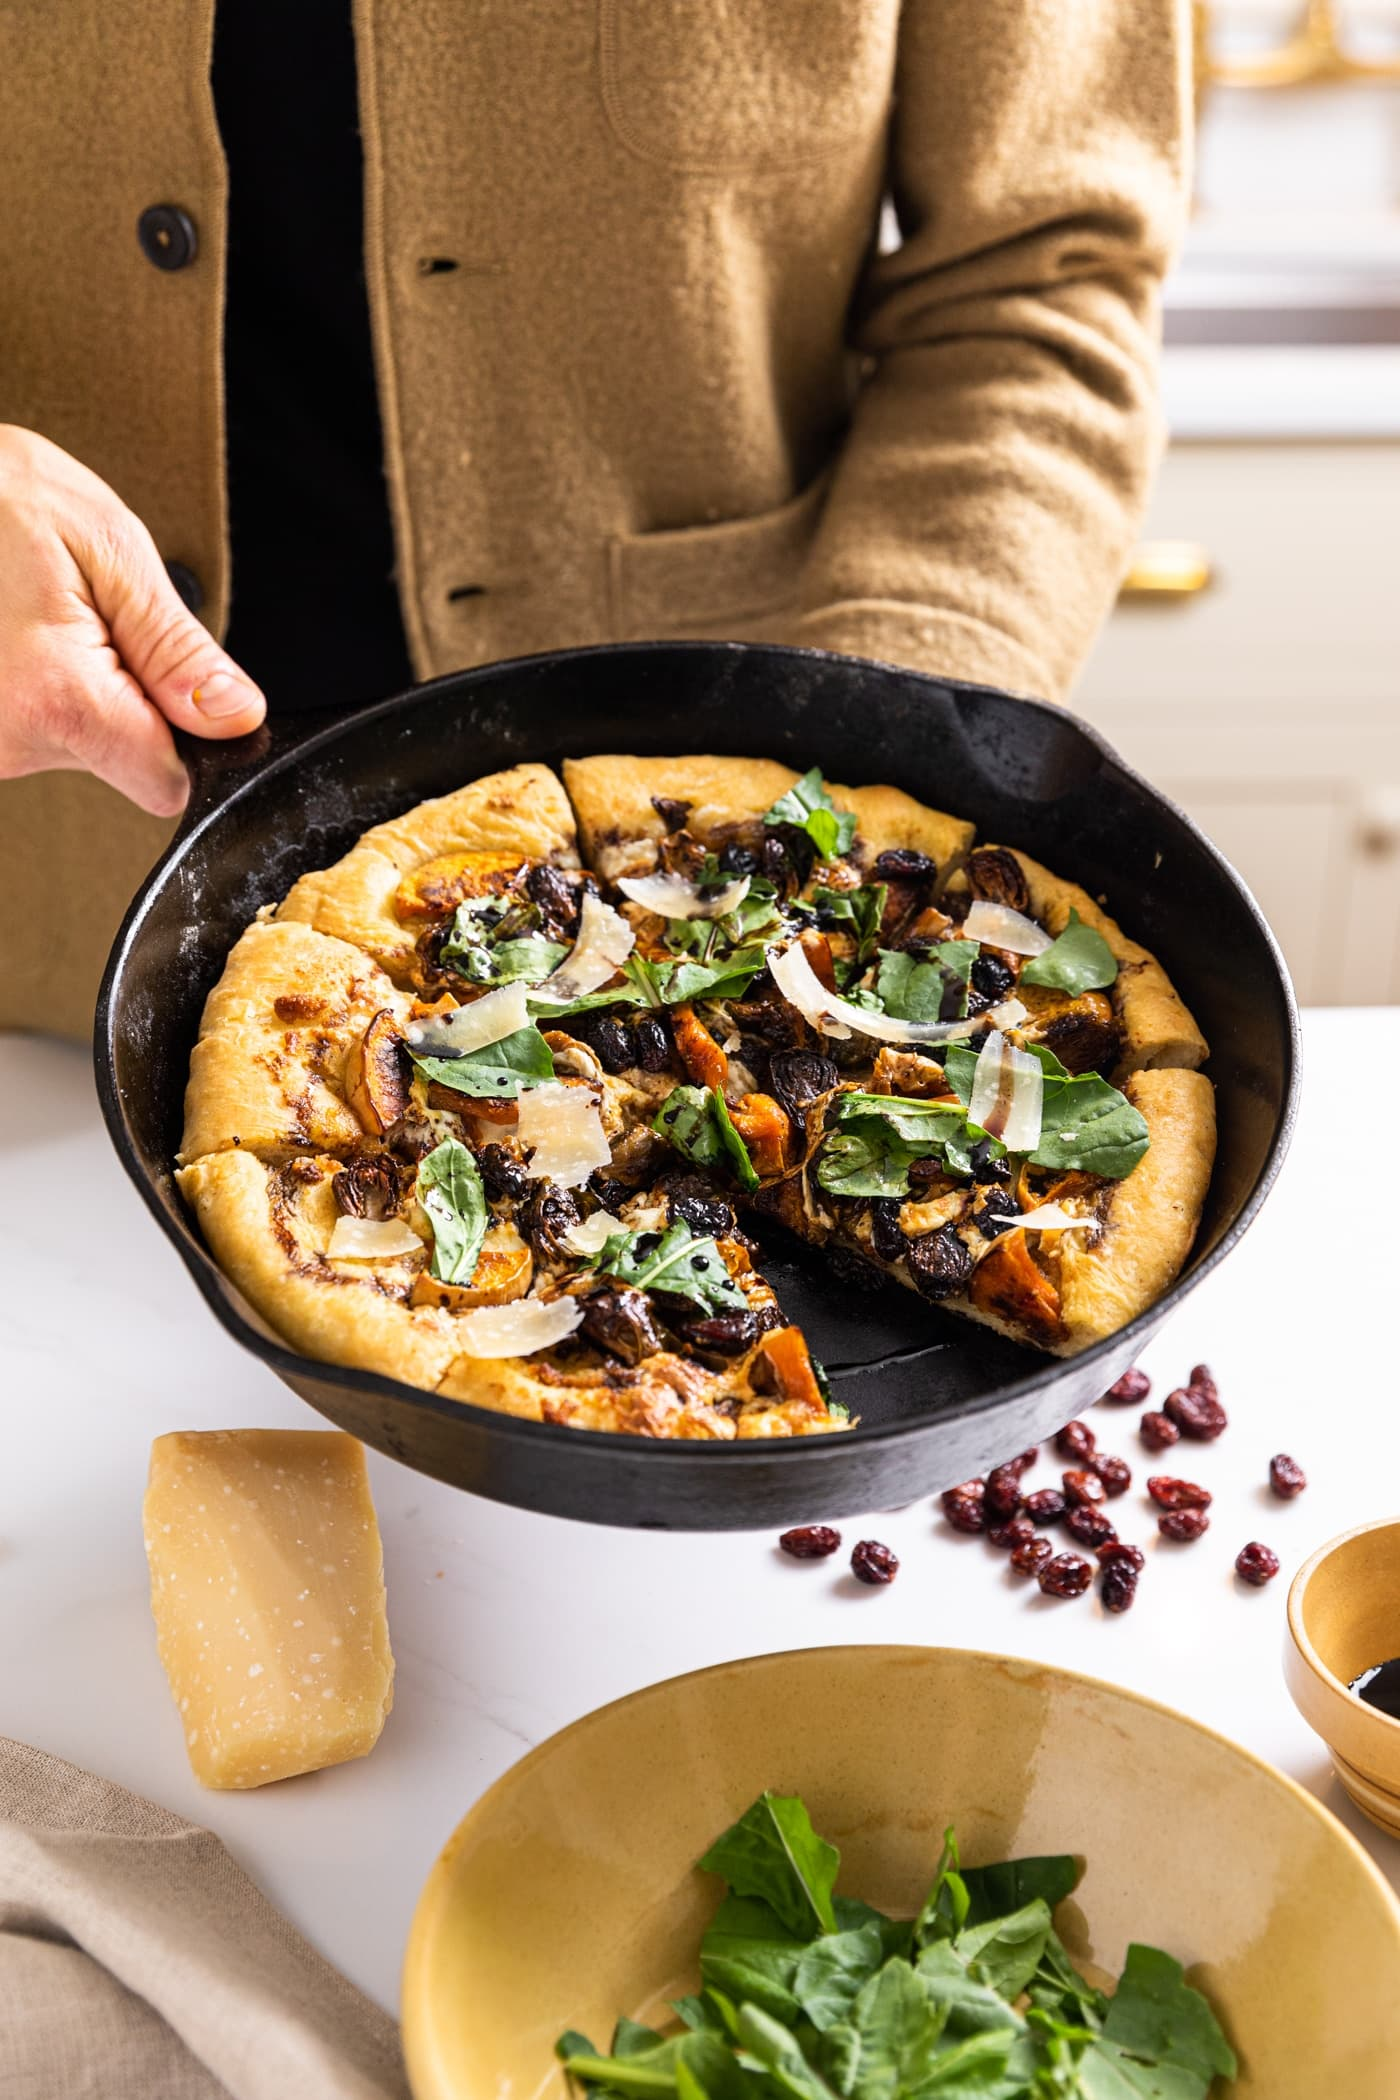 Two hands holding black cast iron skillet filled with rustic pizza topped with green pieces of arugula and cranberries